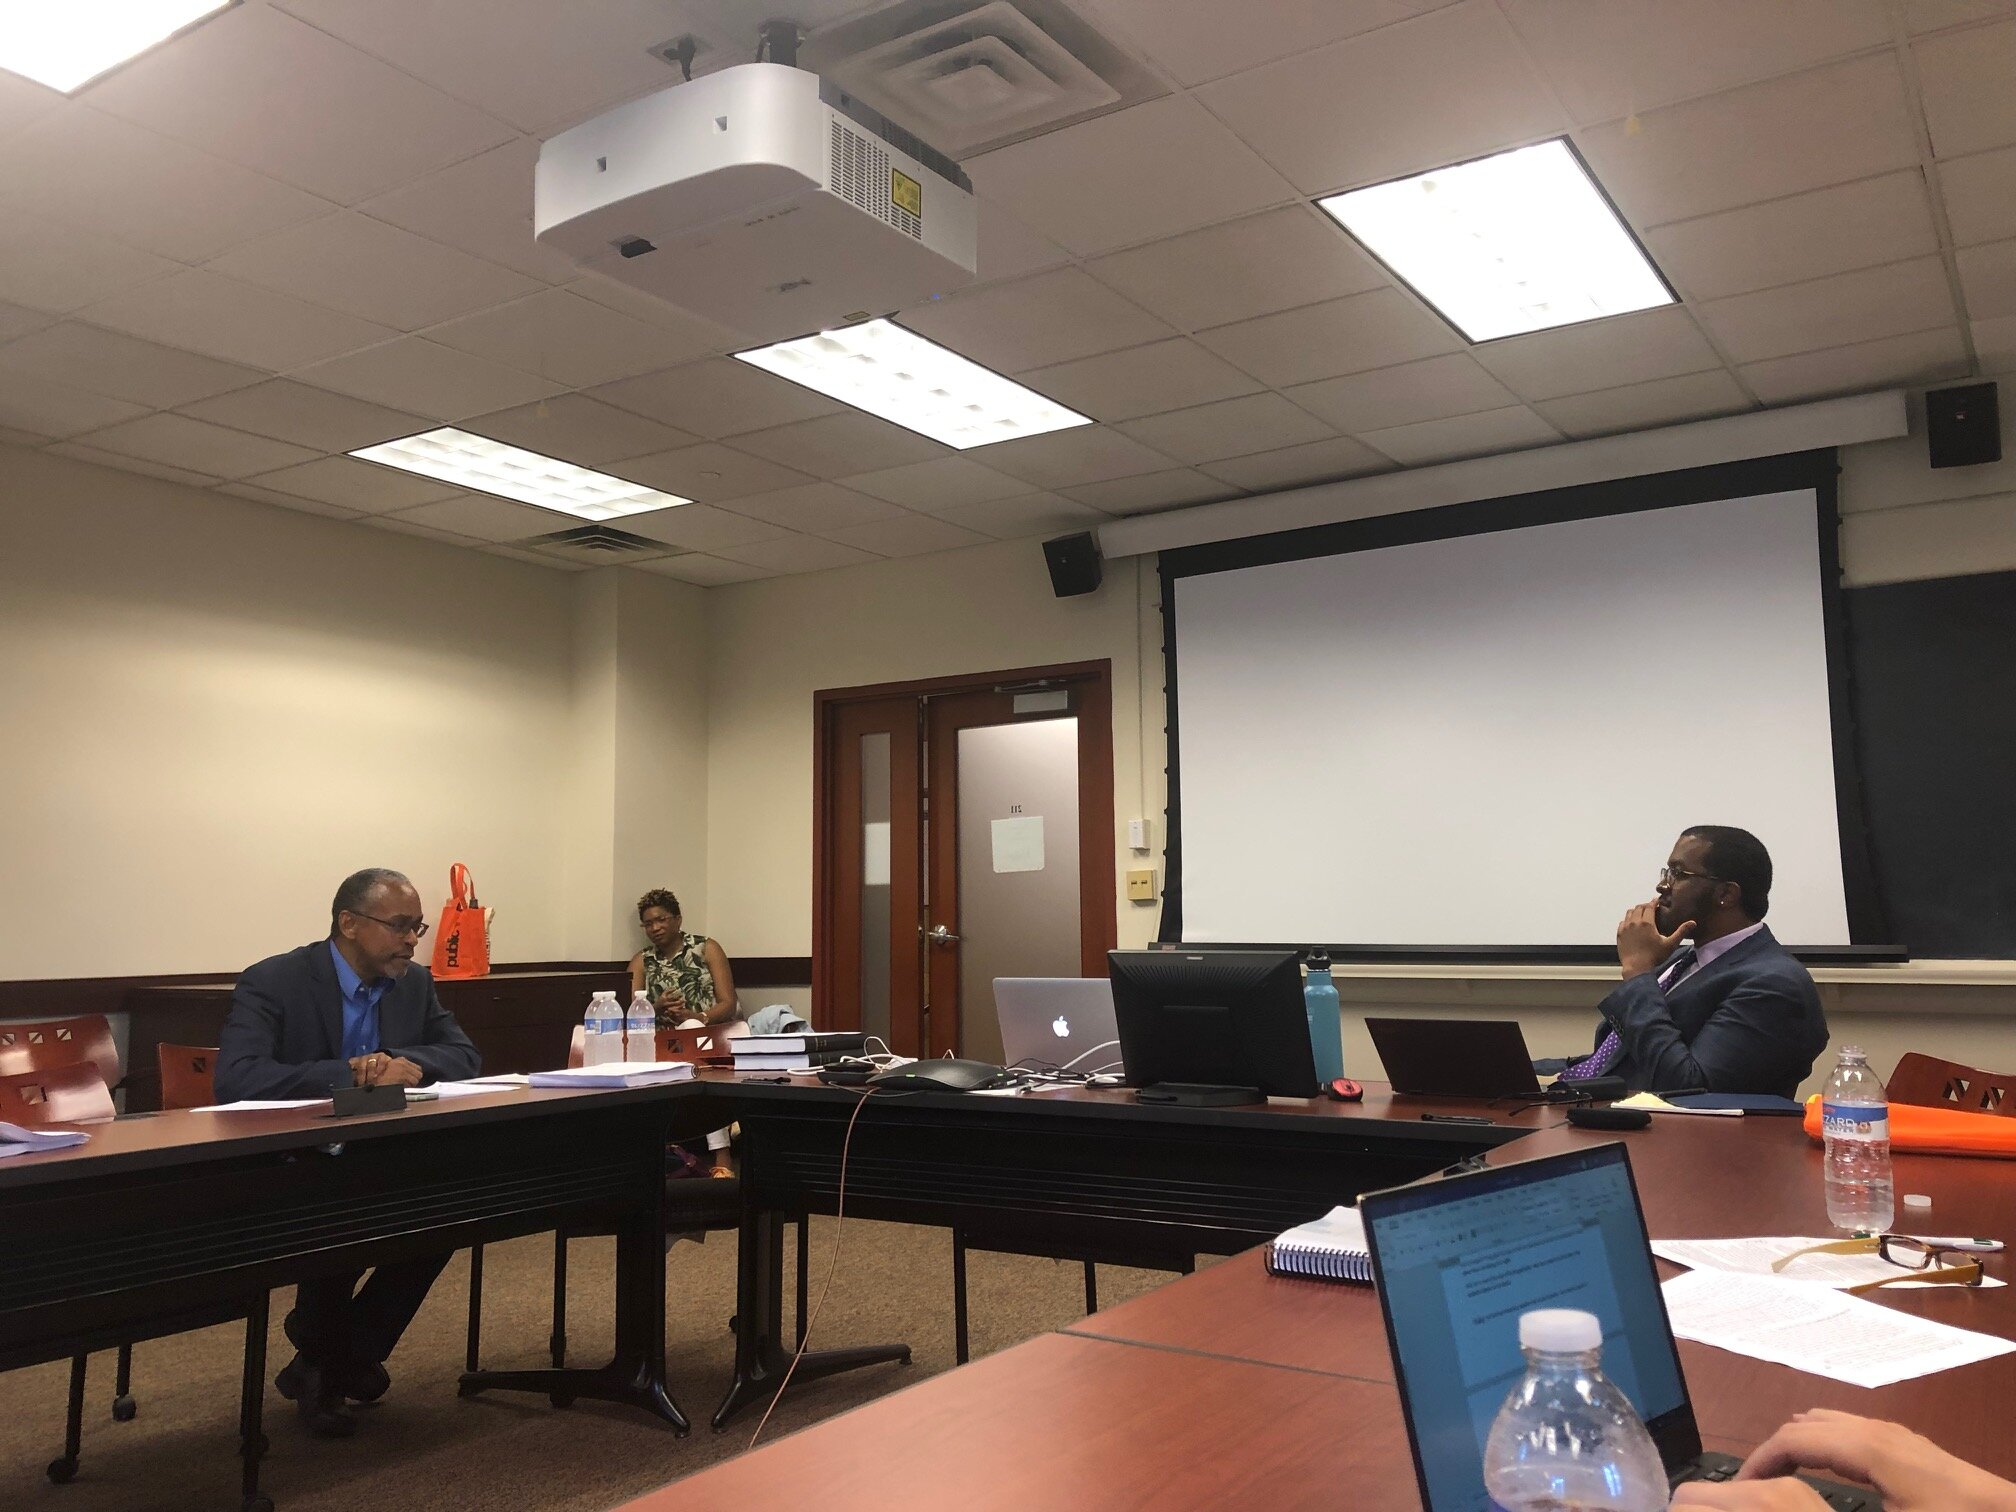 Ezelle Sanford III and Dissertation Adviser Keith Wailoo in Conversation  Sanford Dissertation Defense, June 2019, Princeton University